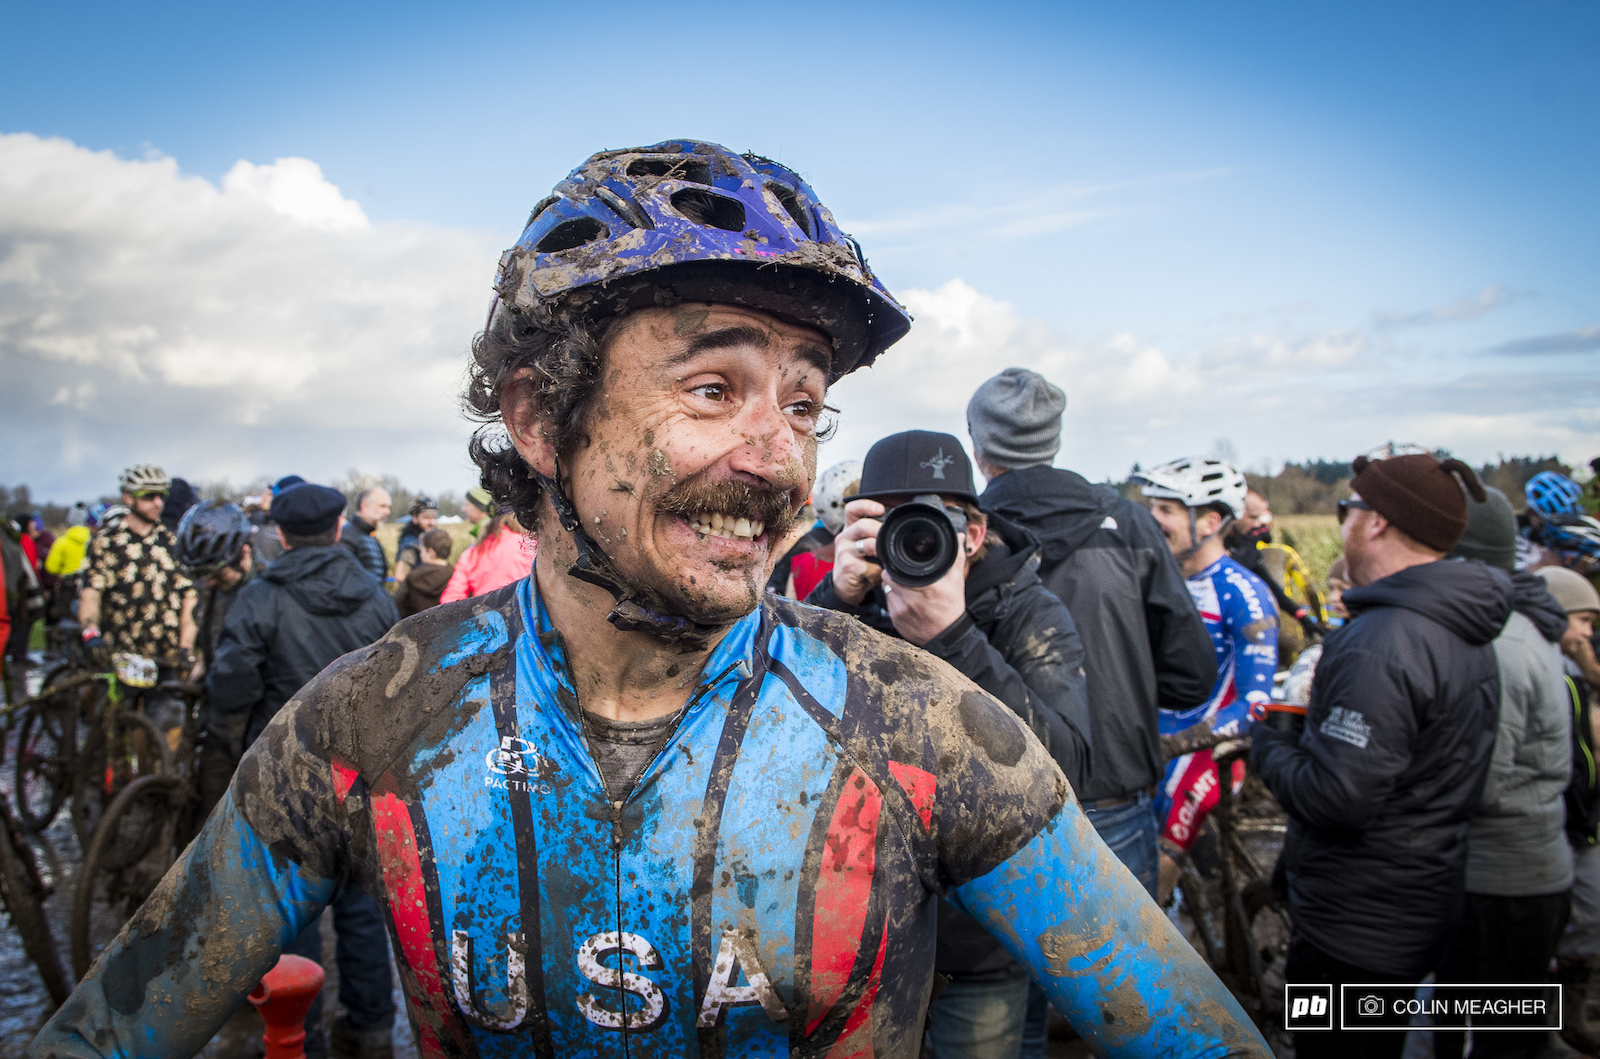 Five SSCXWC wins for Craig.